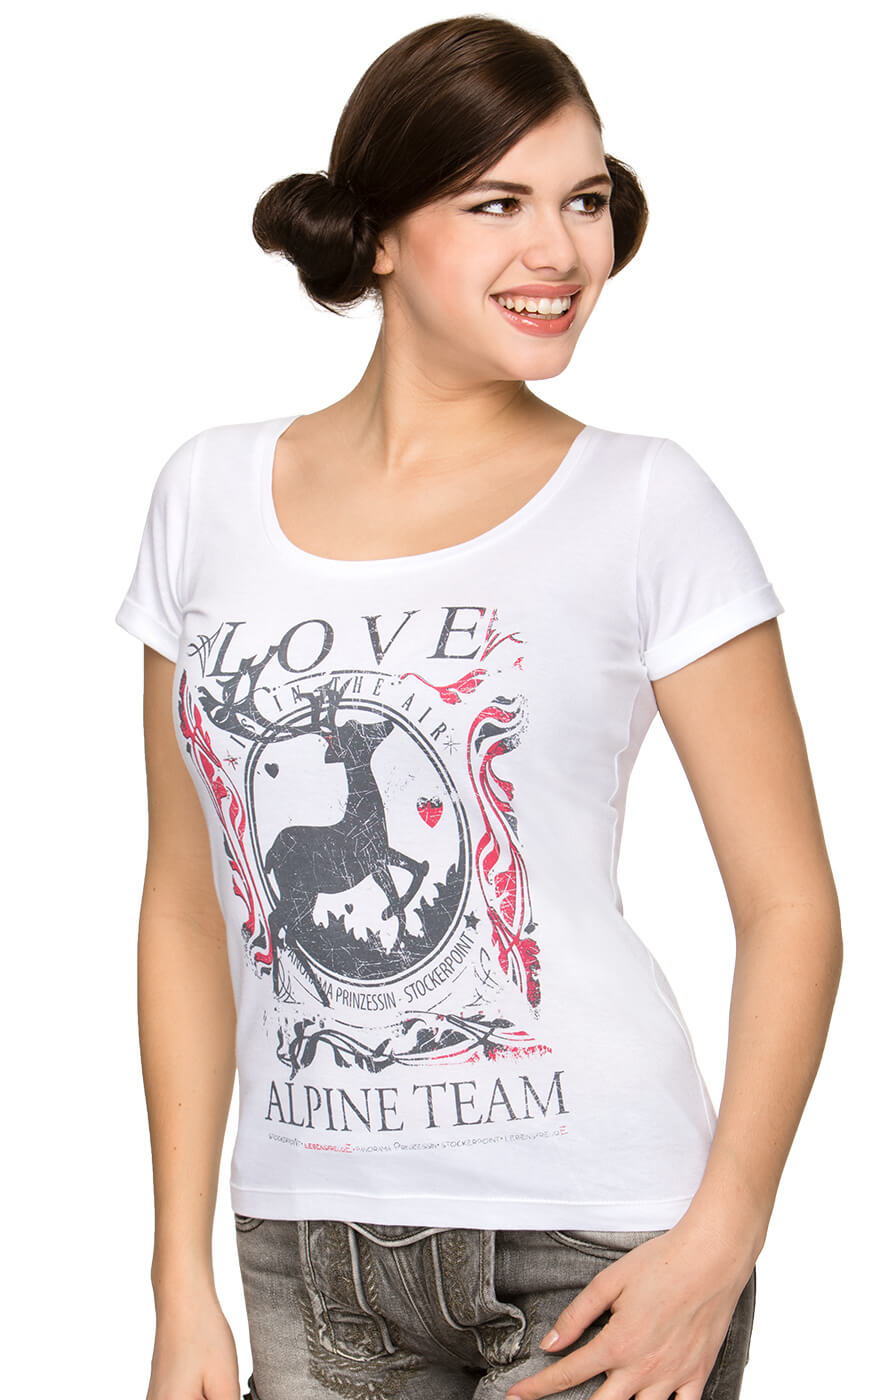 Trachten T-Shirt Alpine Team Yoko von Stockerpoint